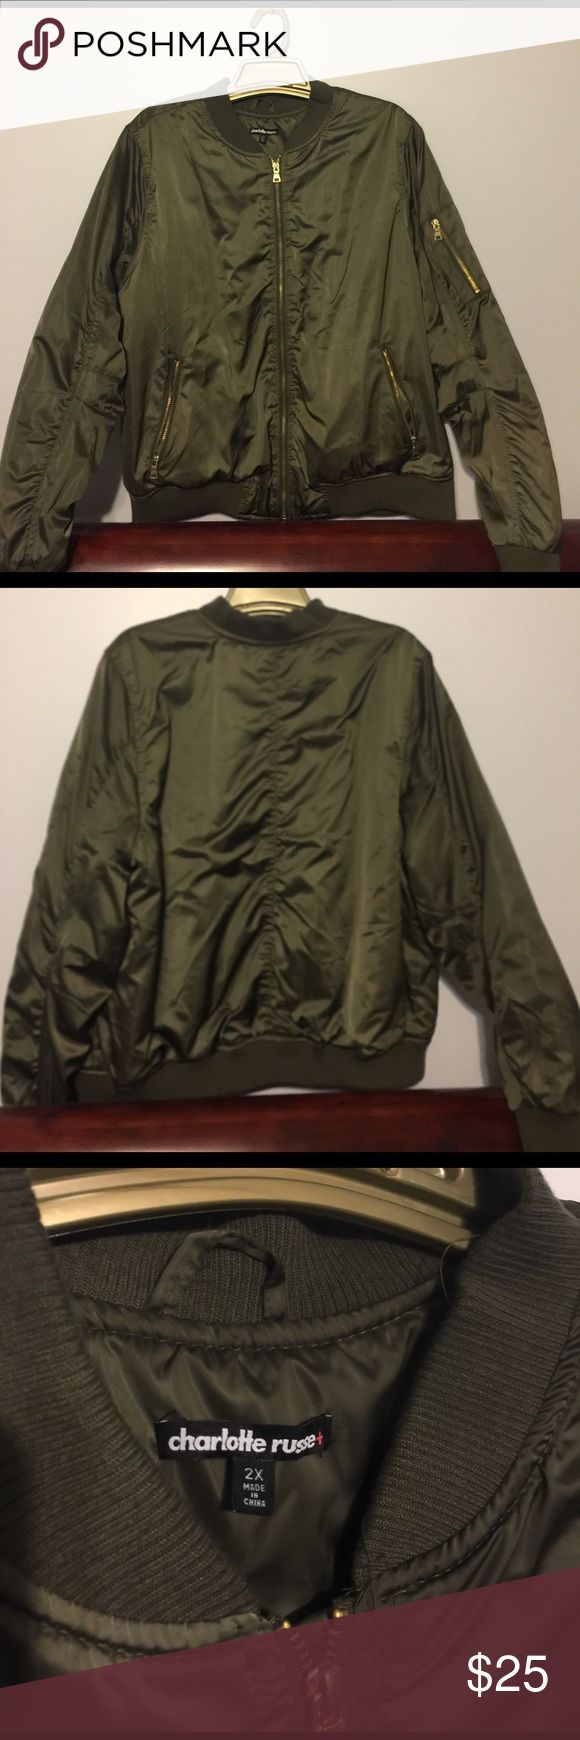 Plus Size Army Green Bomber Jacket Army green bomber jacket, gold zippers, never worn Charlotte Russe Jackets & Coats